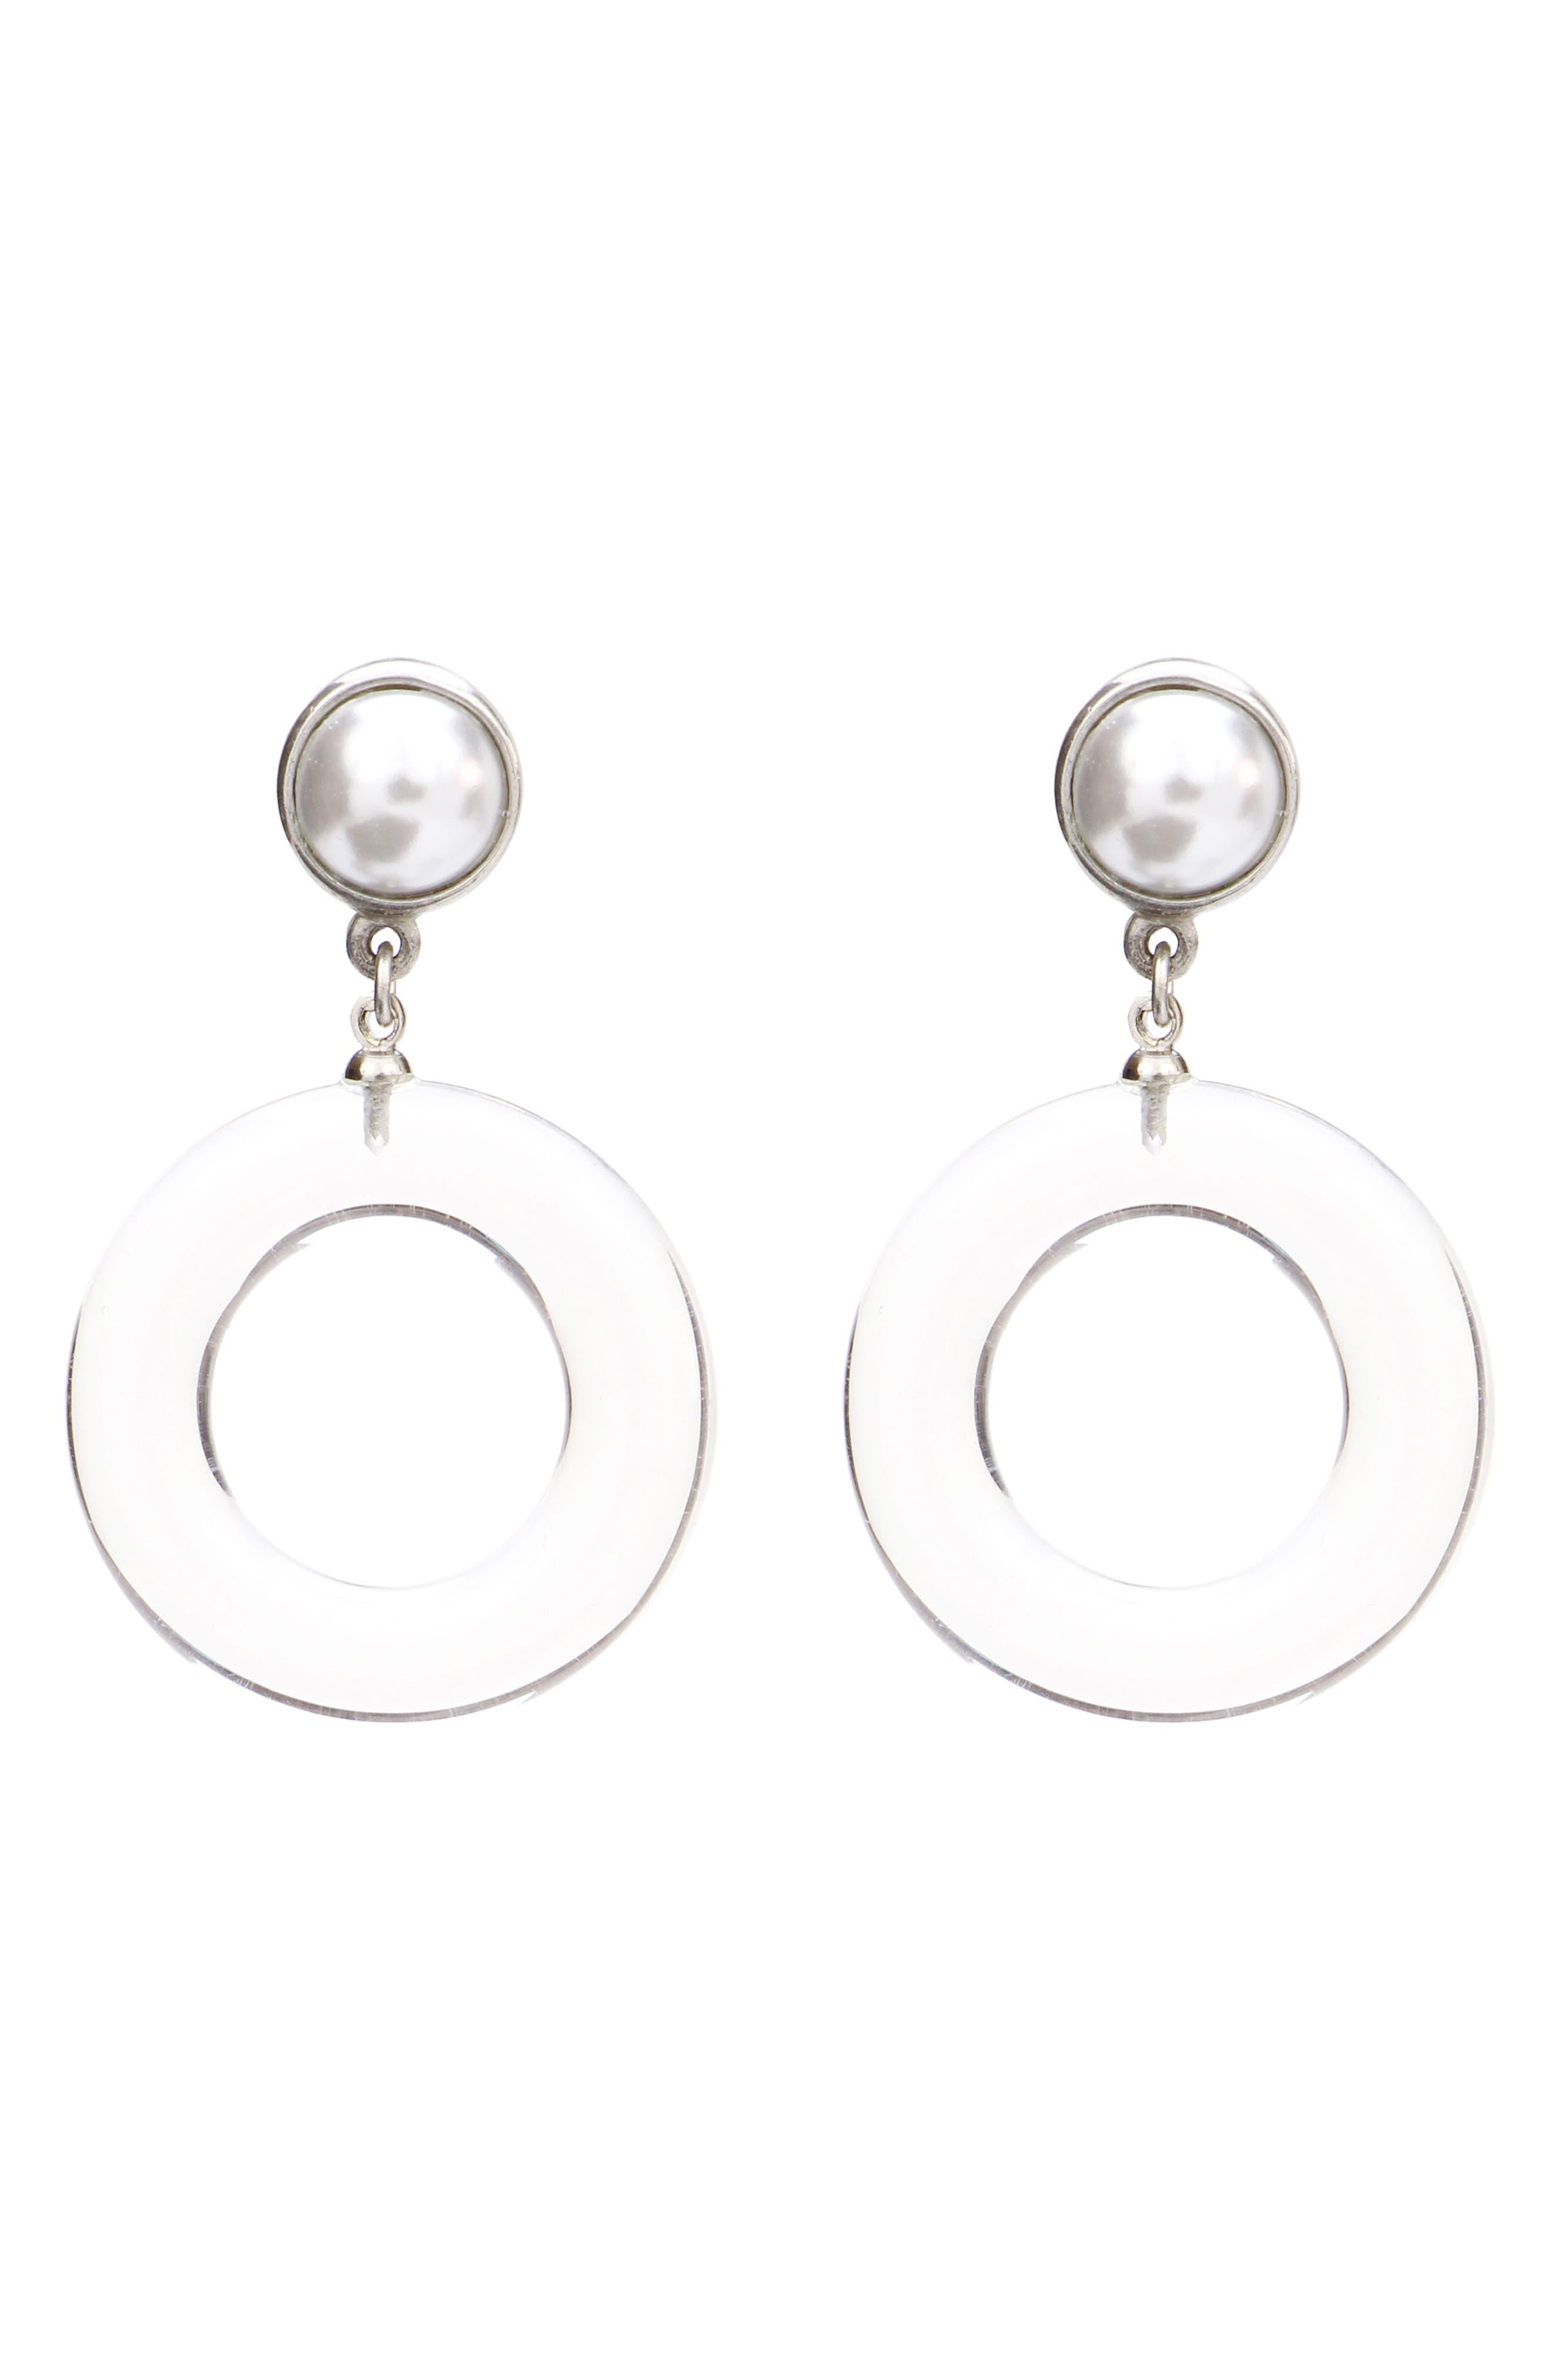 Imitation Pearl Clip Earrings,                             Main thumbnail 1, color,                             Clear/ Silver